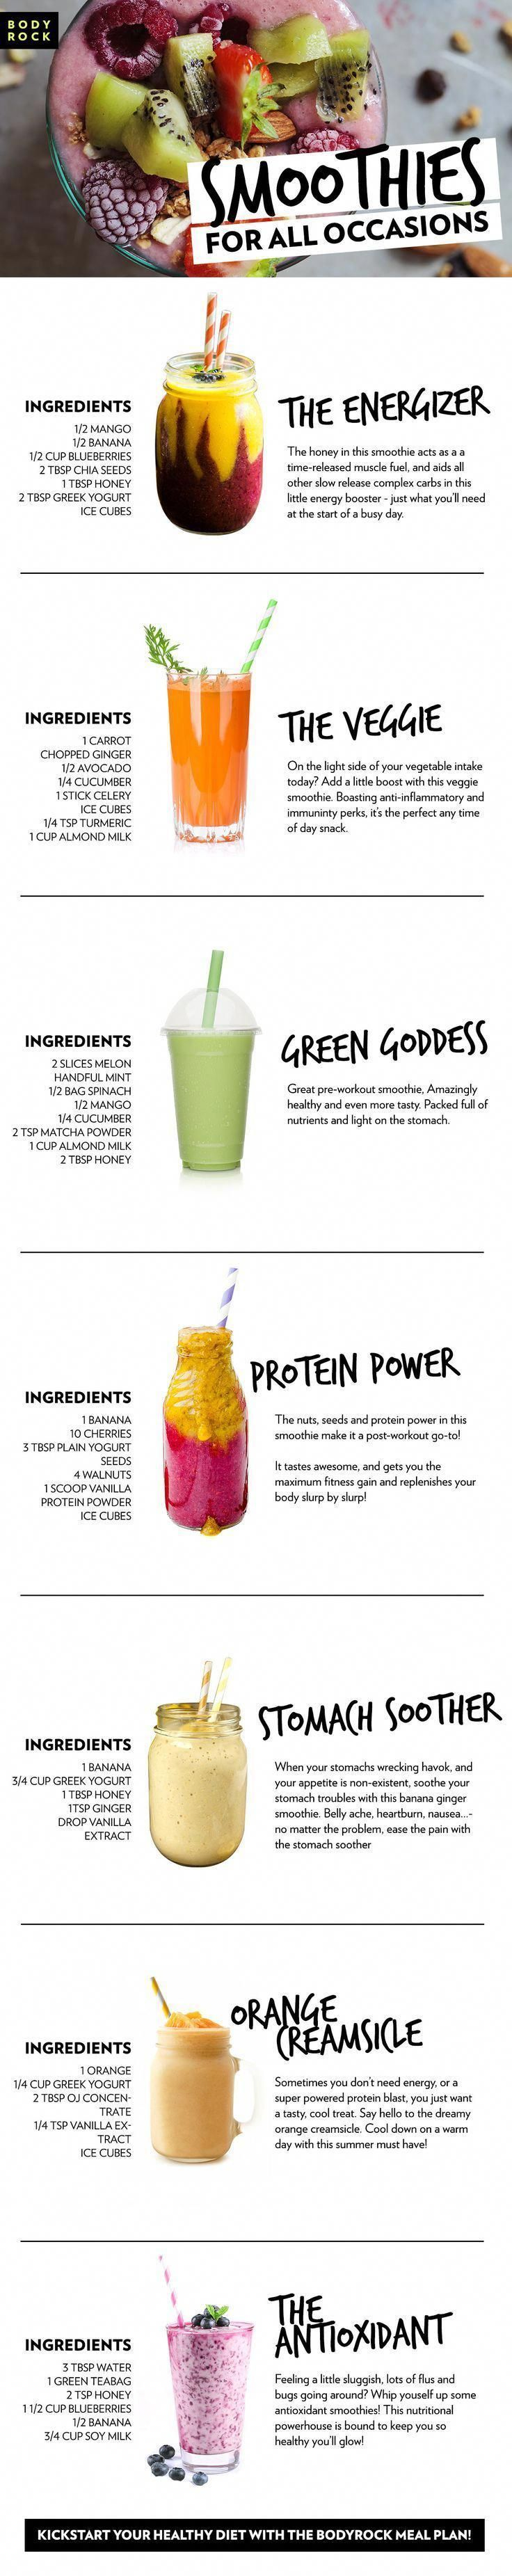 Nutrition Response Testing Near Me Nutritionlessonplans Refferal 4523308891 N Nutrition R Smoothie Recipes Healthy Healthy Smoothies Smoothie Recipes